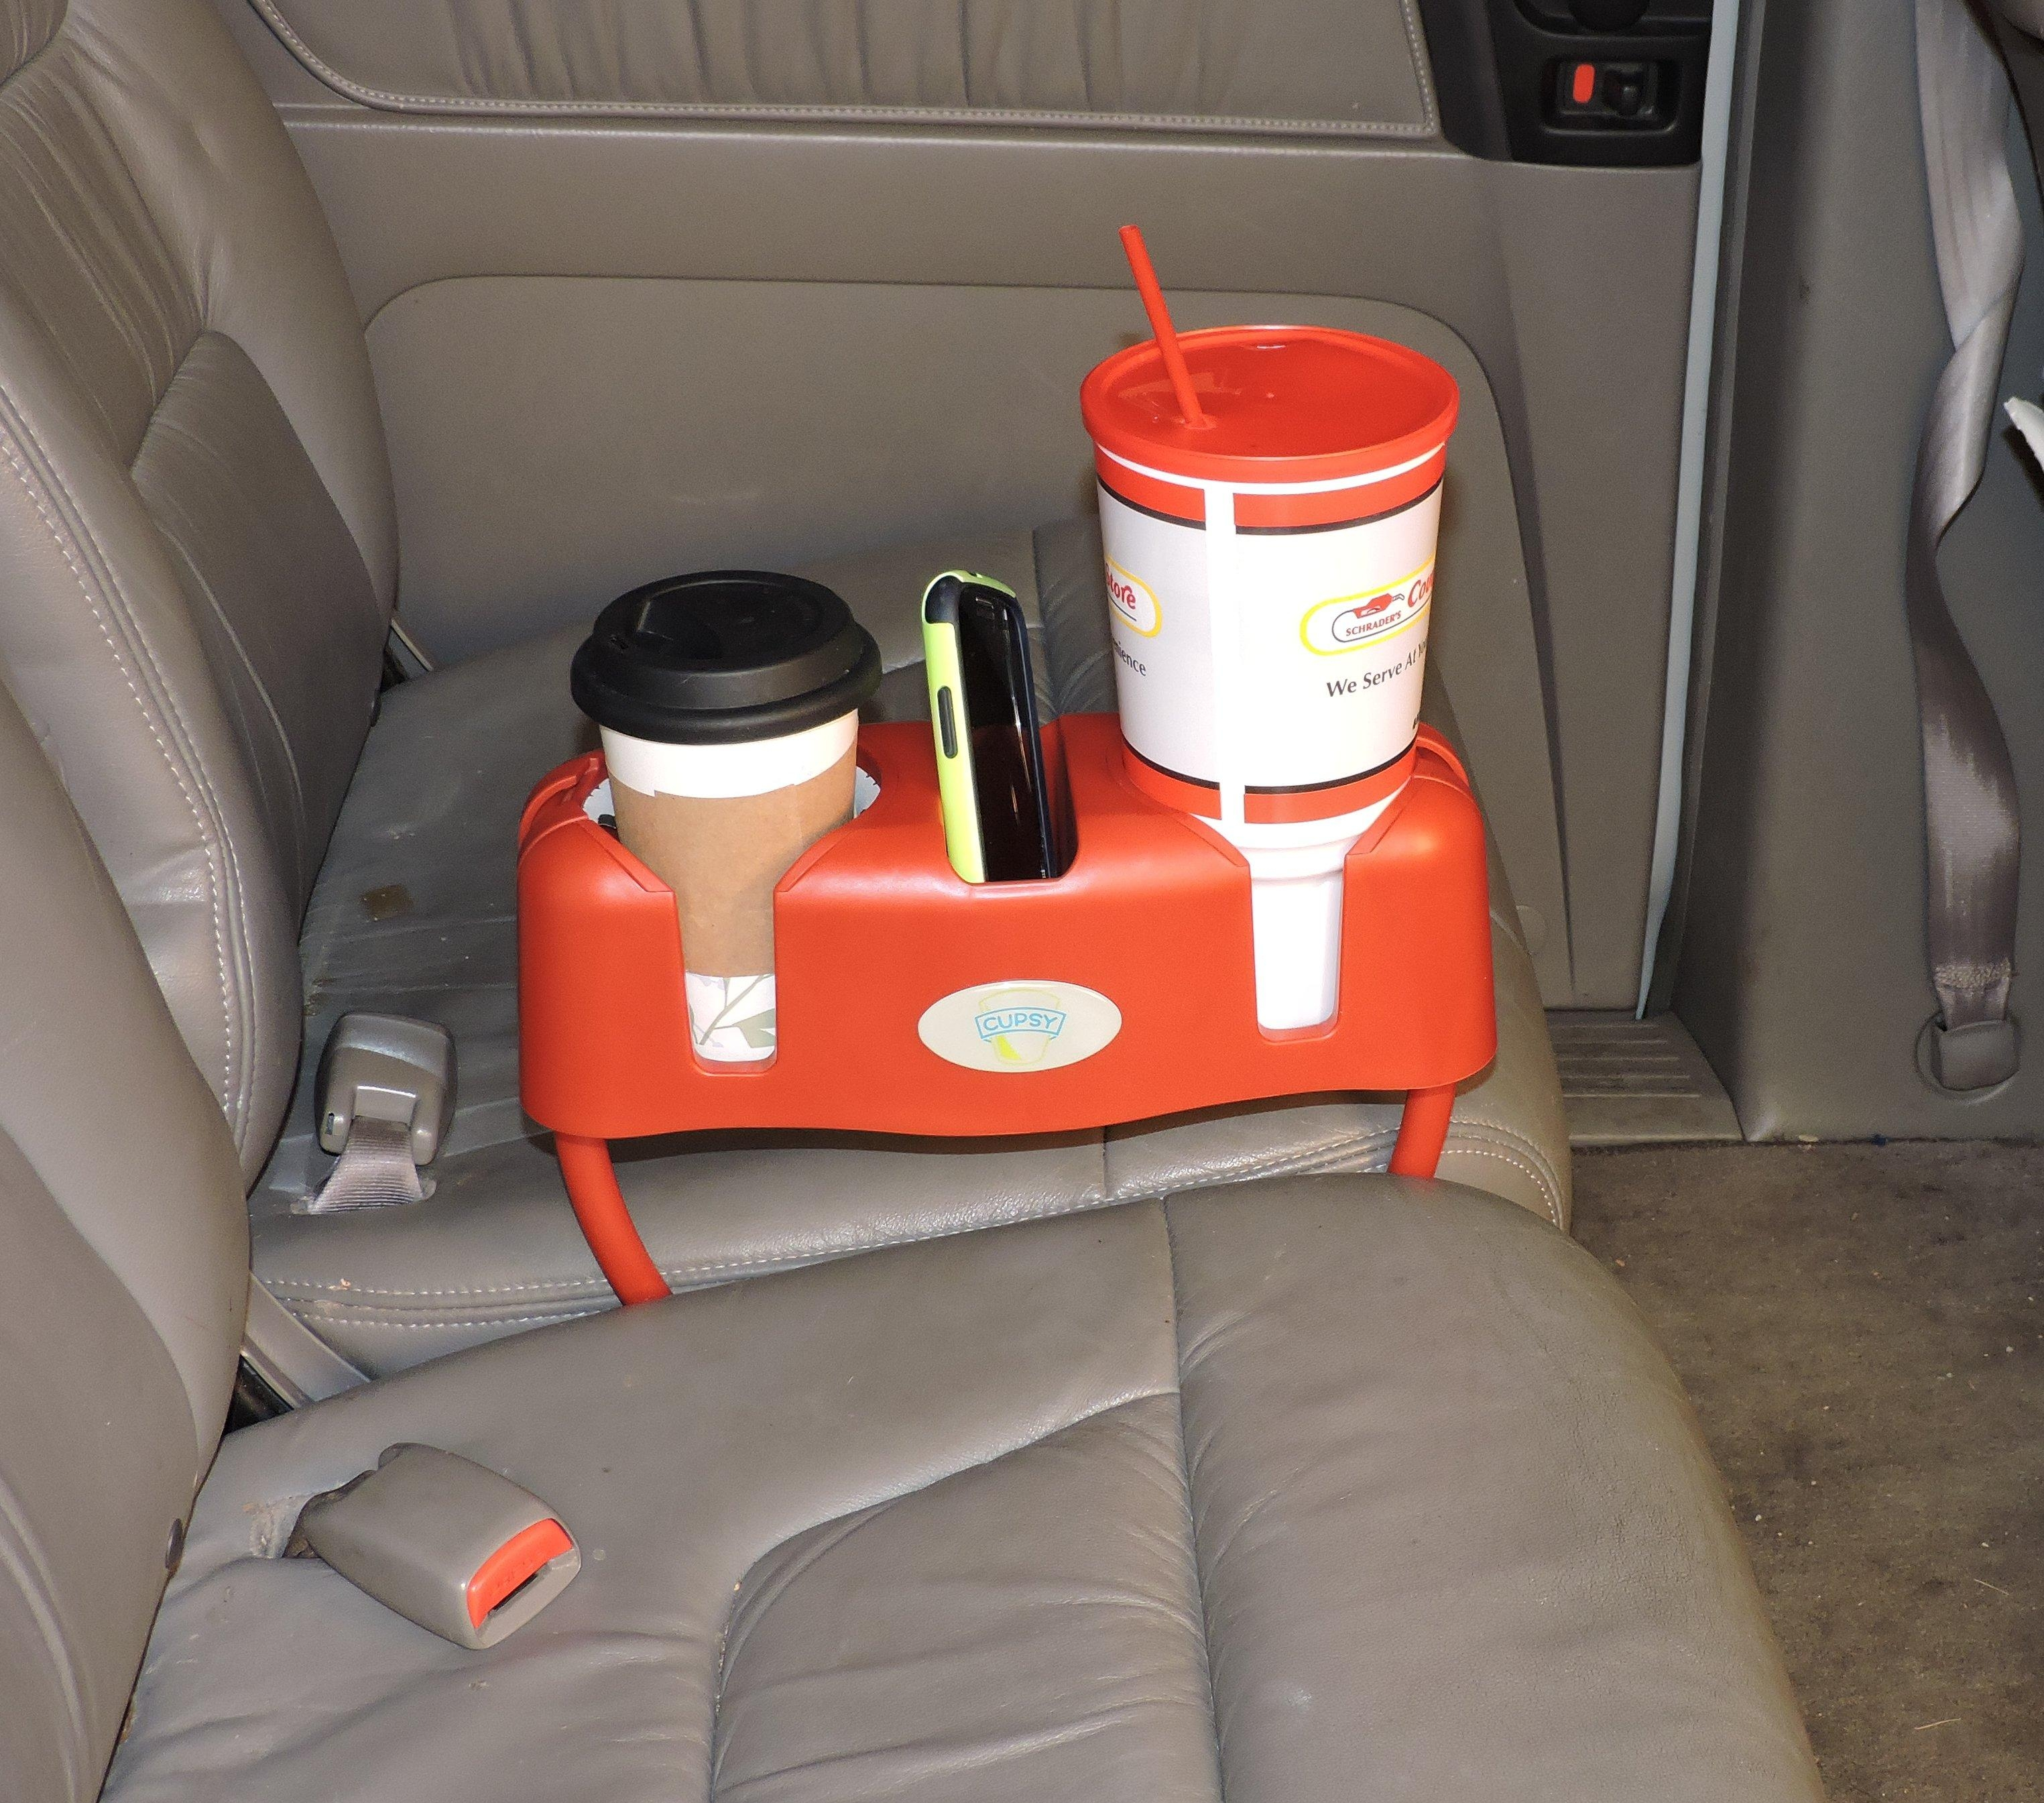 Cupsy – The World's Most Overachieving Cupholder Pertaining To Sofas With Drink Holder (Image 5 of 20)